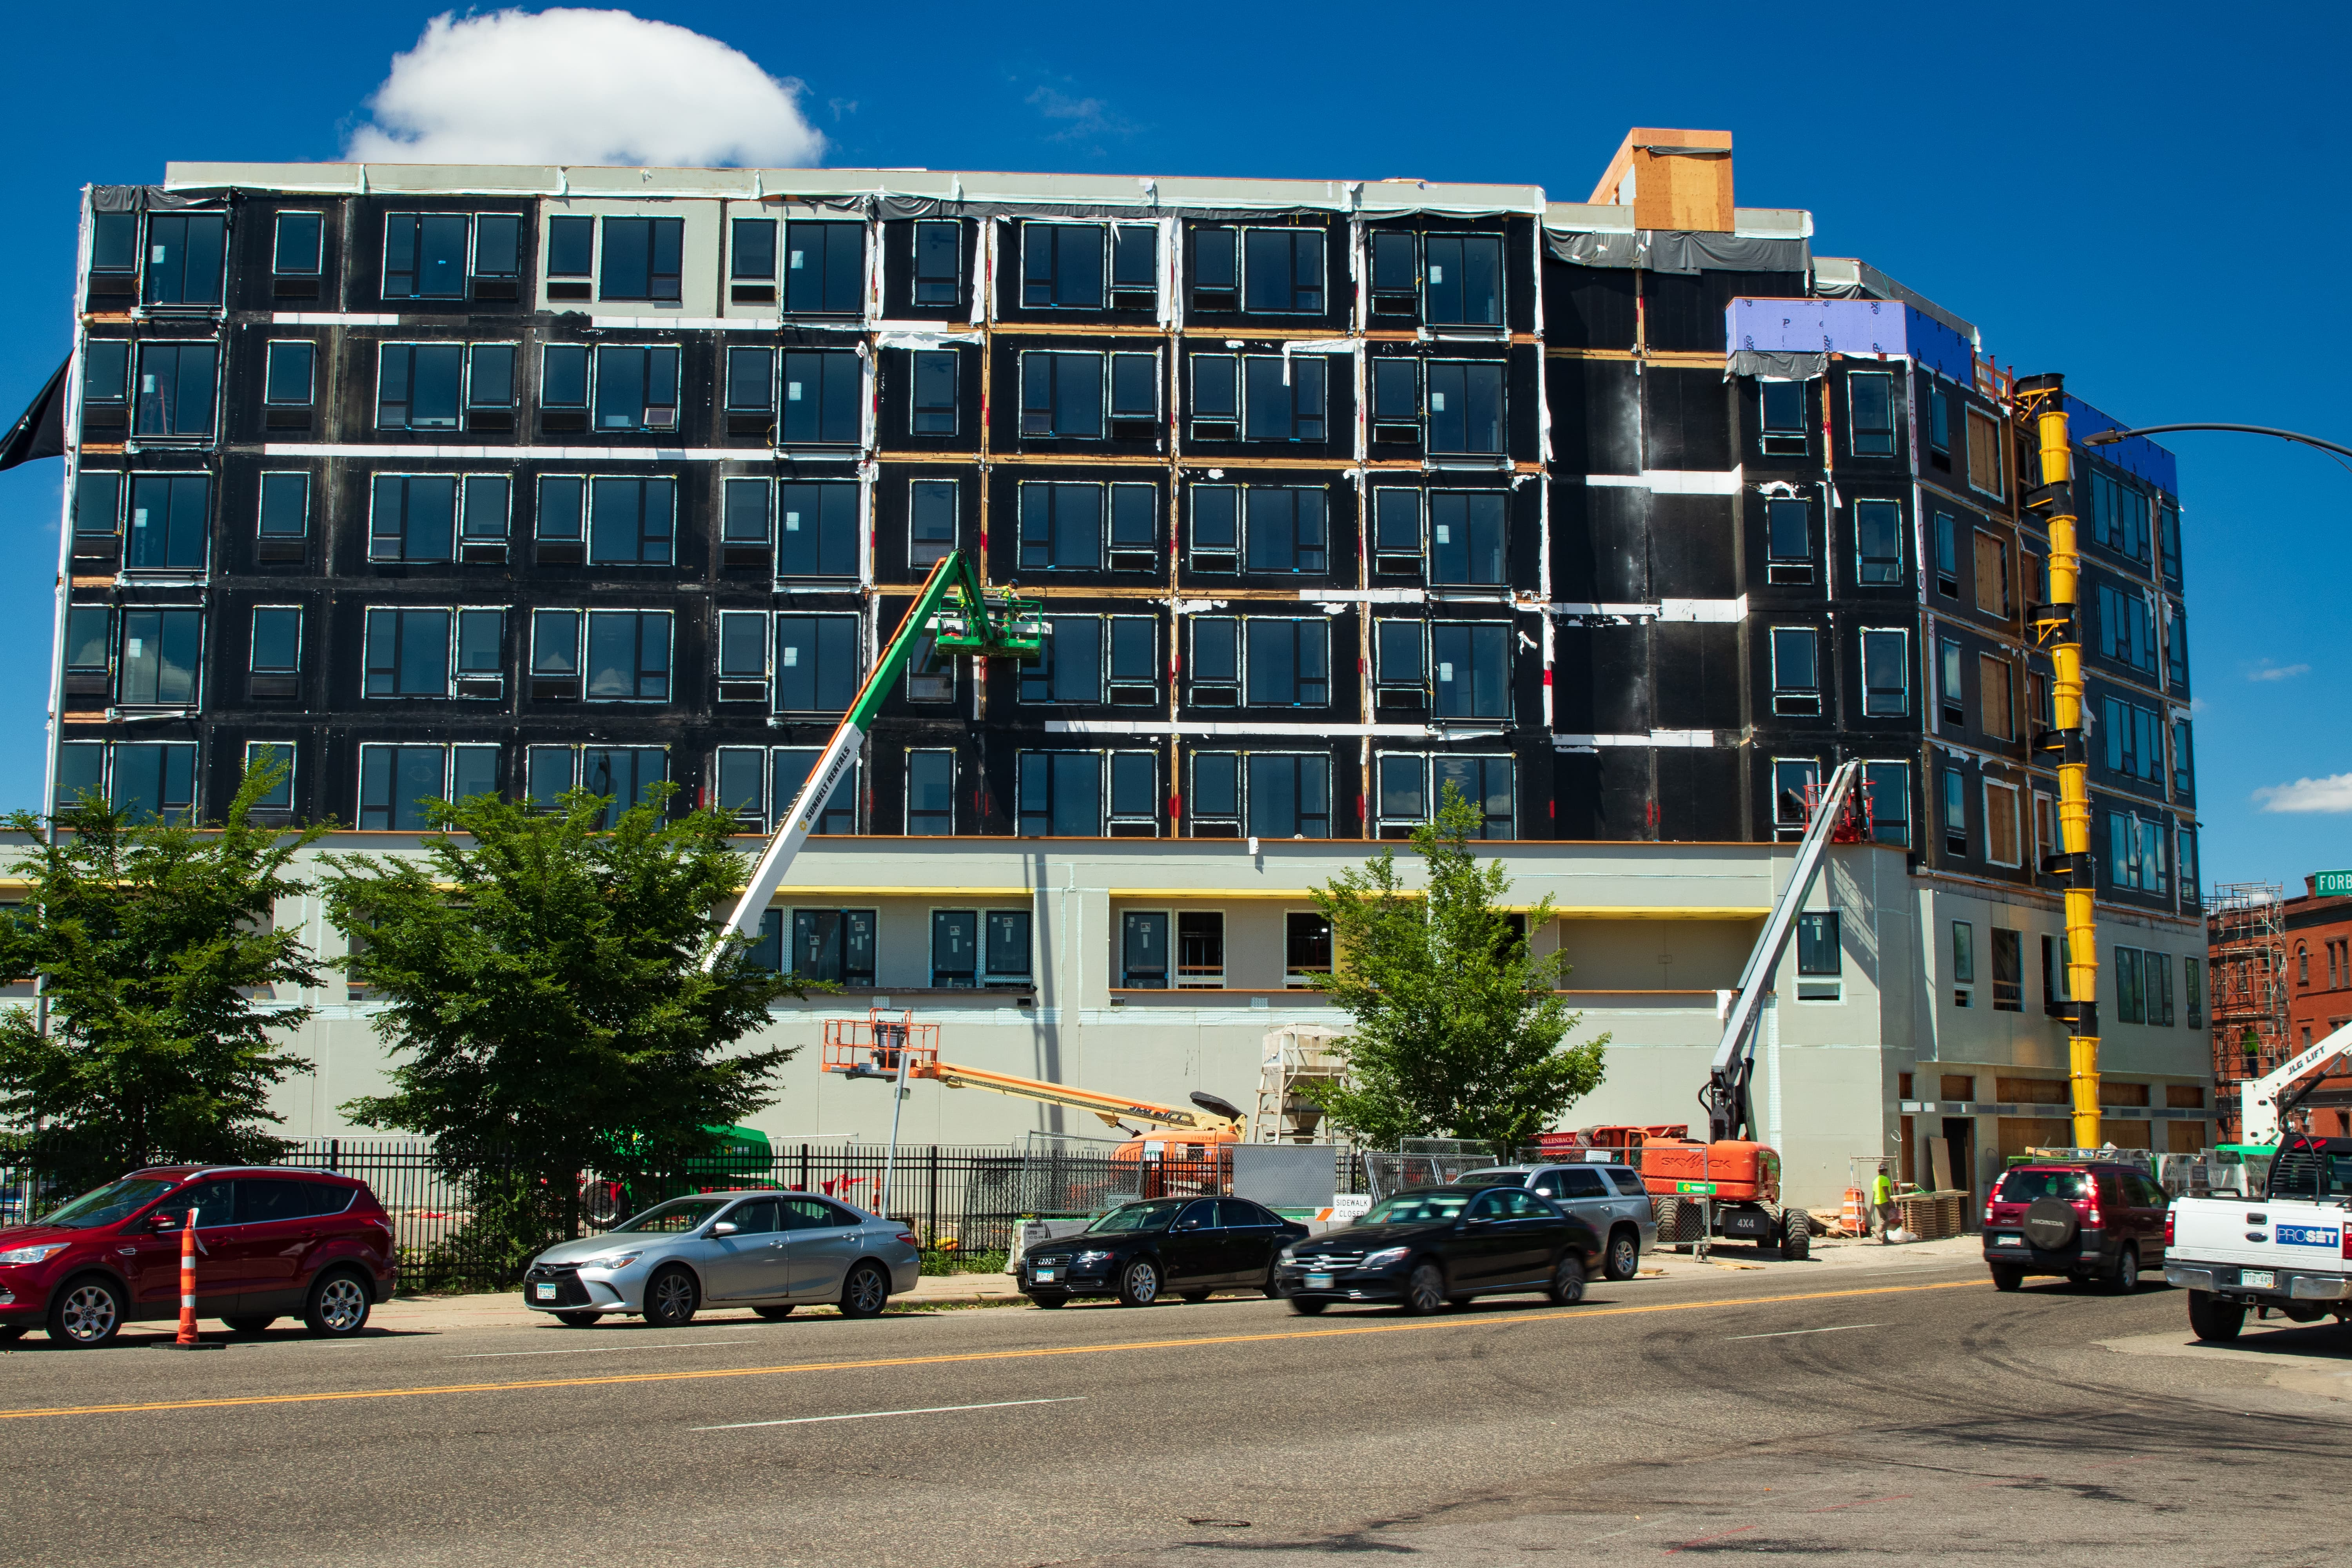 The seven-story Alvera Apartments takes shape at 337 West Seventh Street. It is the largest modular construction project ever in Minnesota.